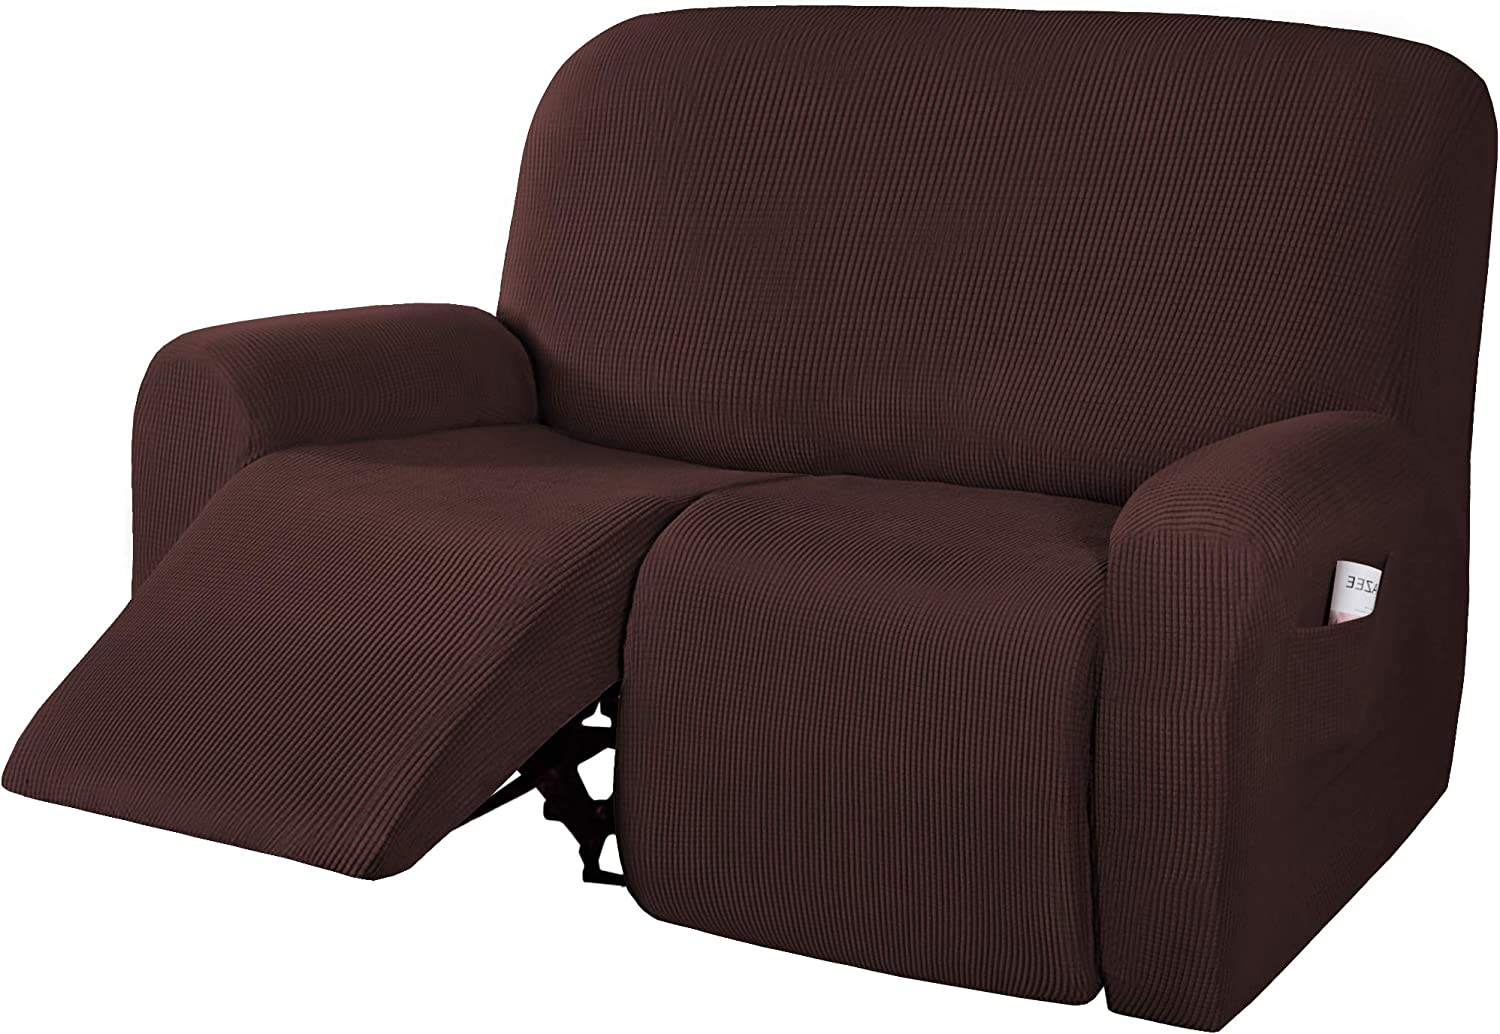 H.VERSAILTEX Super Stretch Recliner Loveseat Covers Reclining Couch Covers Furniture Sofa Covers for 2 Seater Recliner Thick Soft Jacquard Pattern Form Fitting and Easy Put On, Chocolate